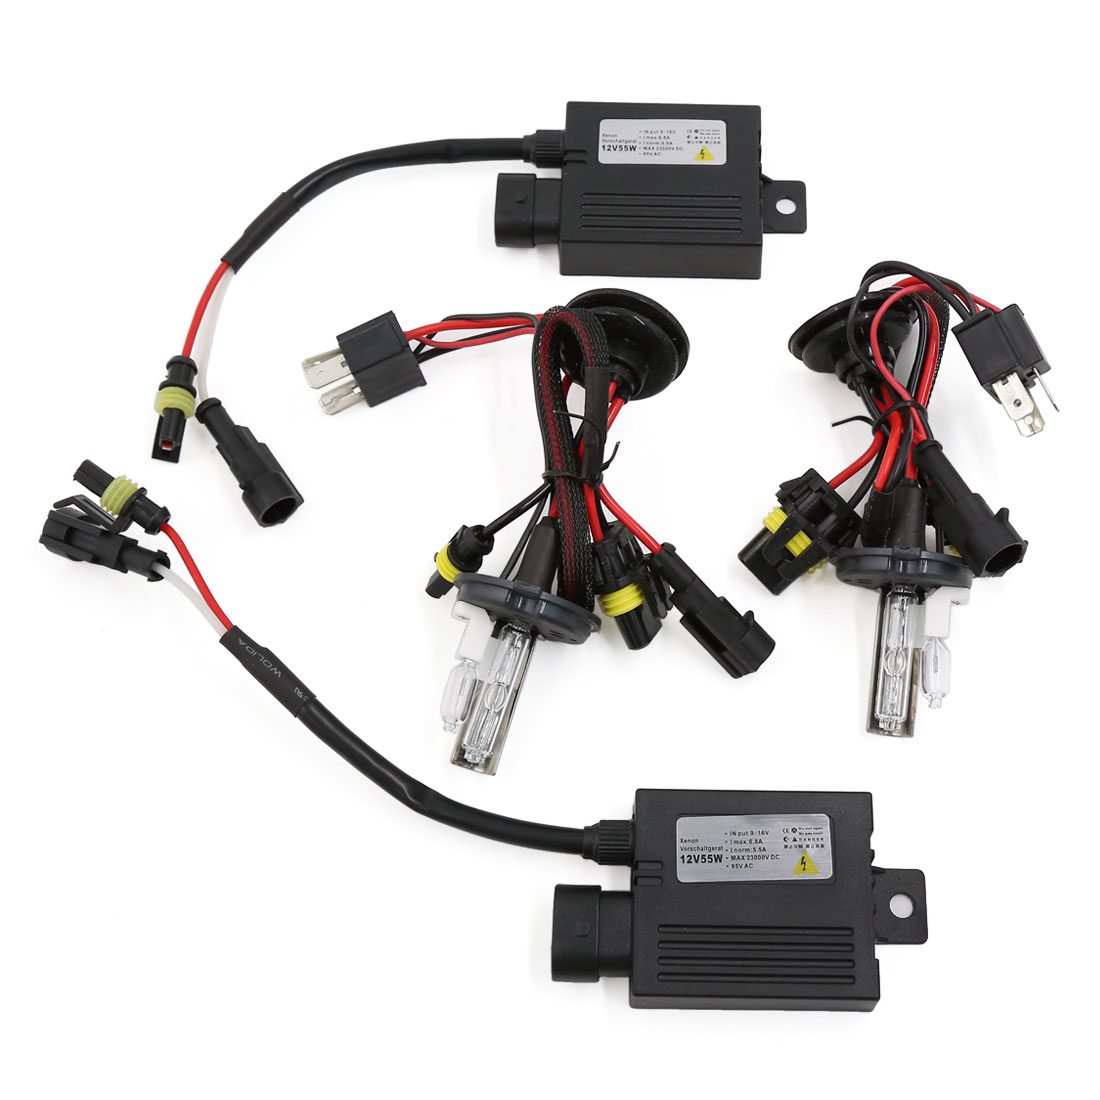 55W 4300K H4 HID Bulb Hi-Lo Dual Beam Xenon Headlamp Slim Ballast Conversion Kit